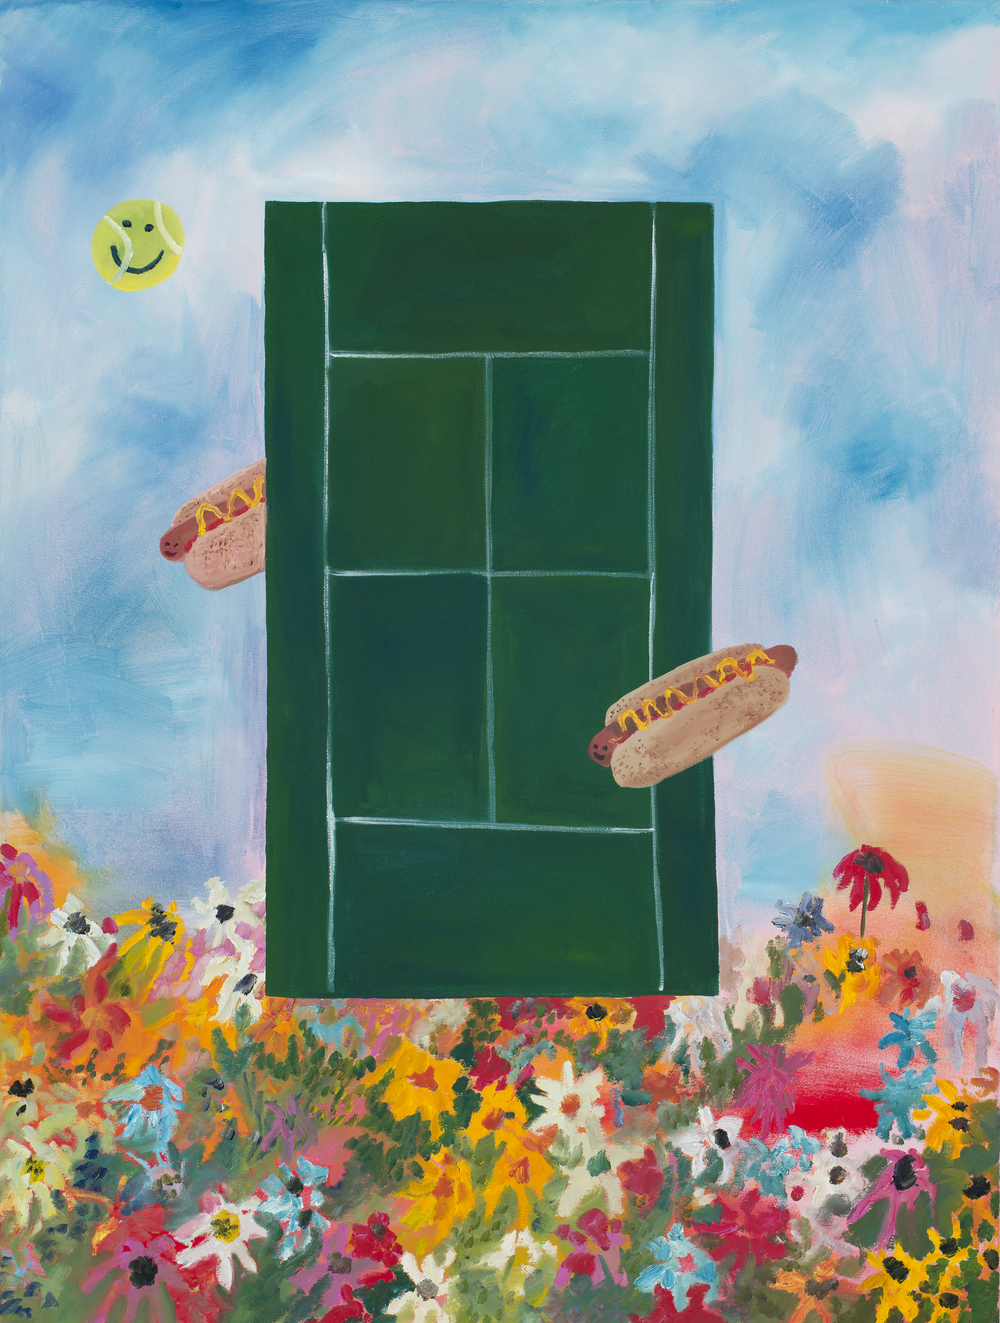 S.Osborne_If I played Tennis I Would Eat Hot Dogs at the Same Time, 2015.jpg